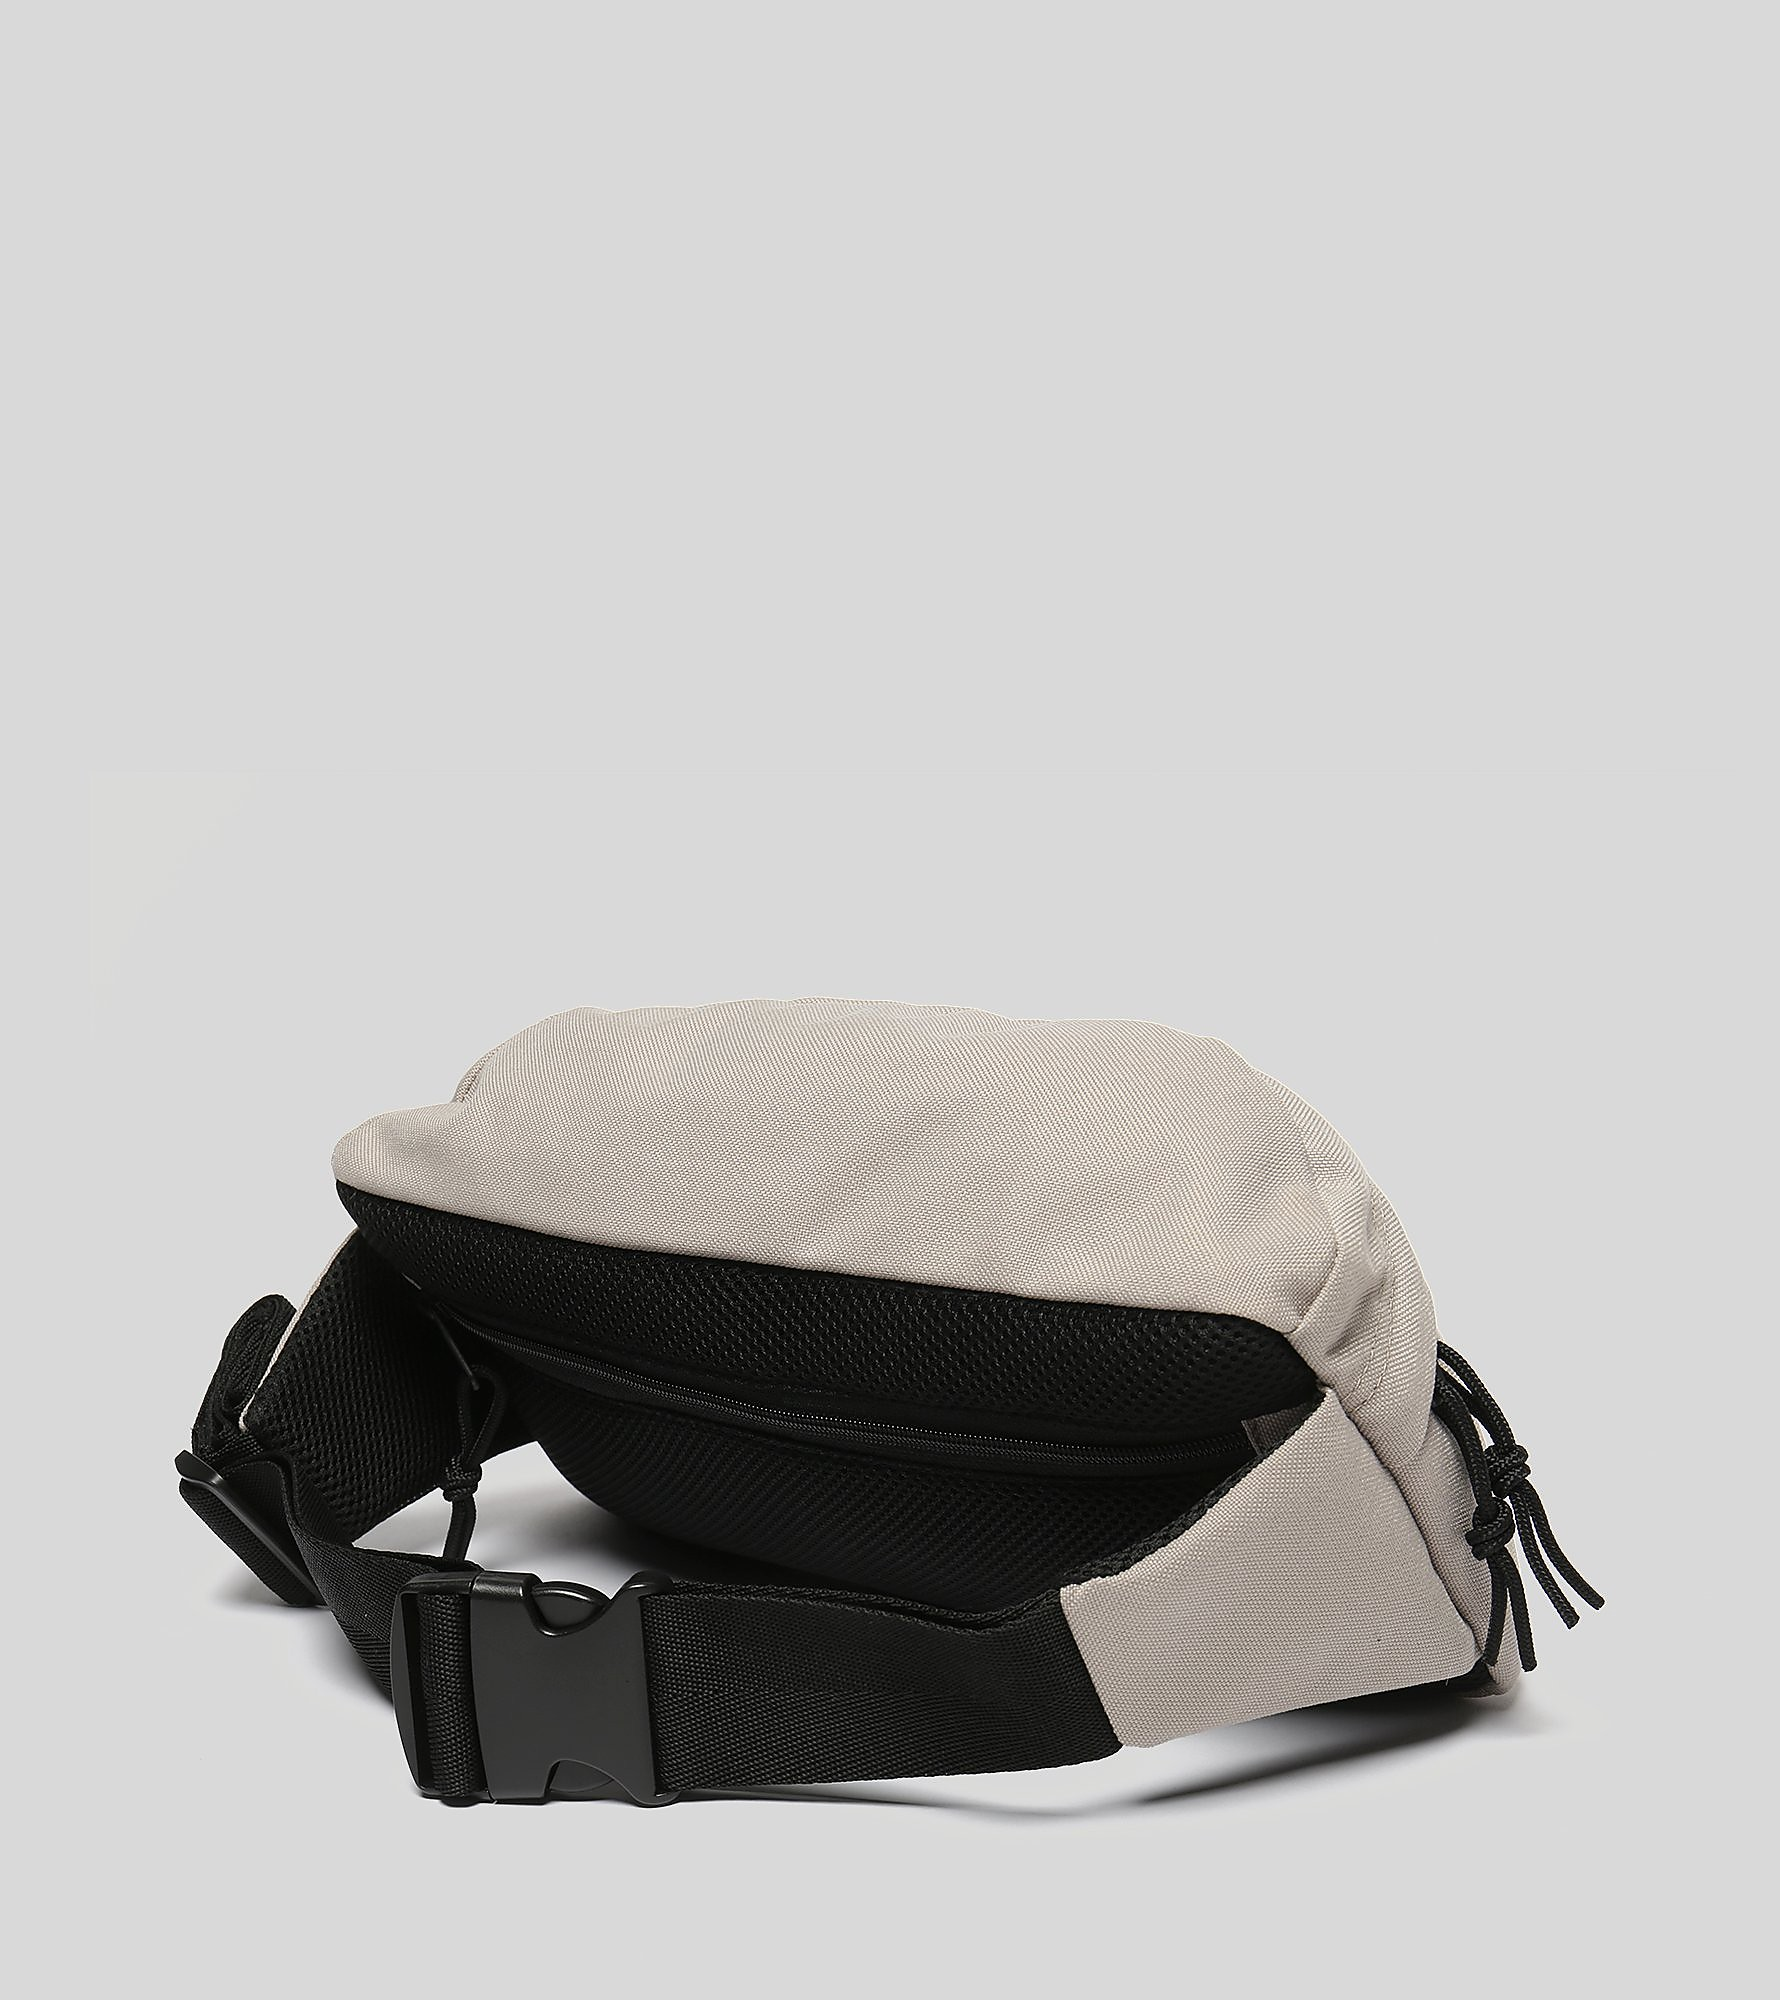 Napapijri Hope Bum Bag